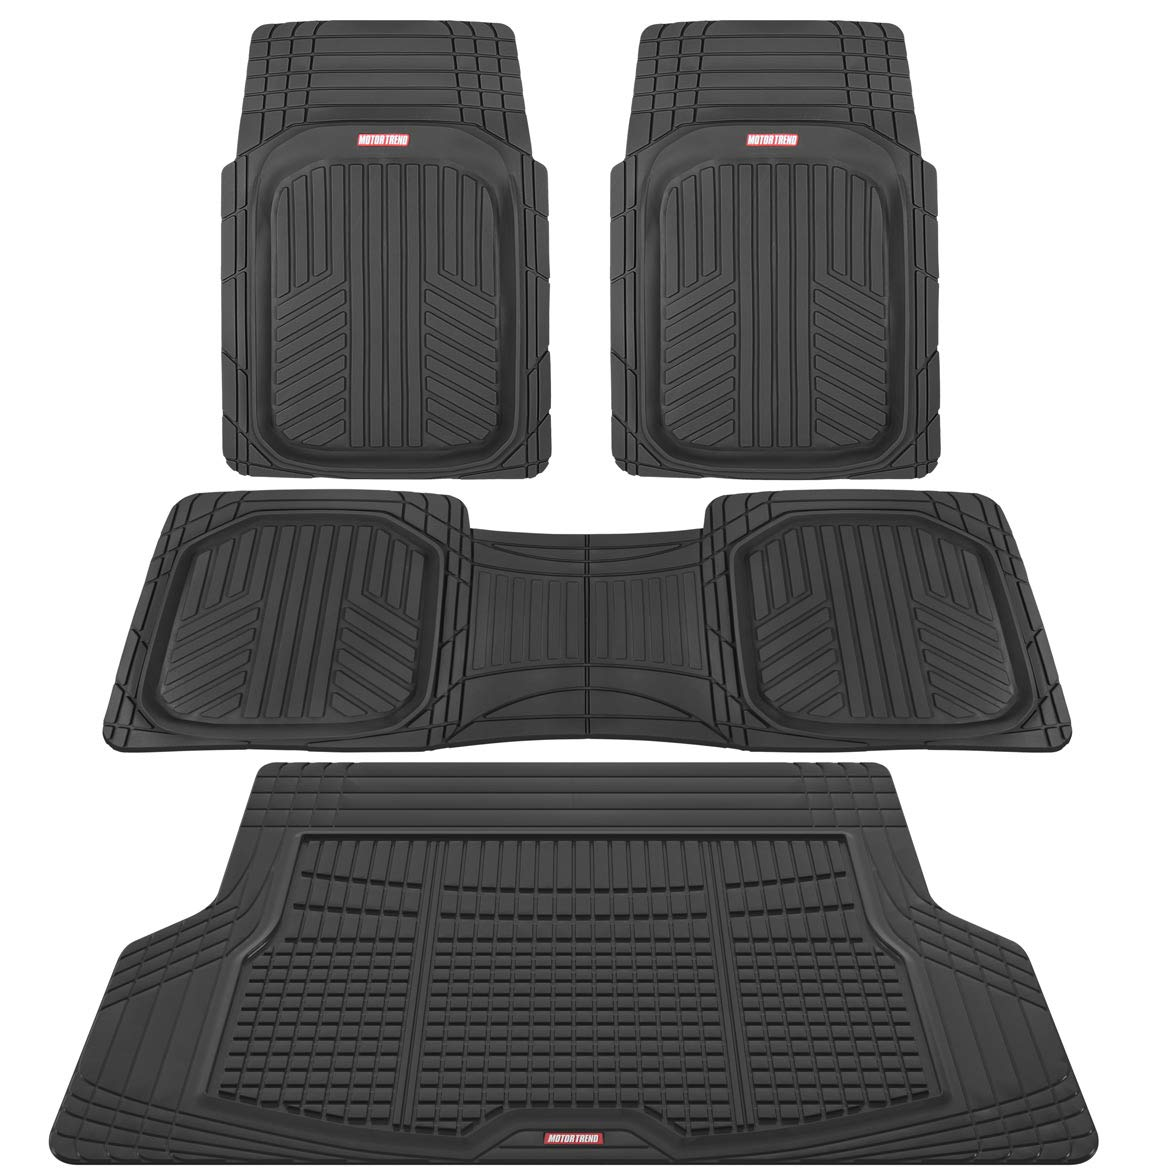 Motor Trend Premium FlexTough All-Protection Cargo Liner - DeepDish Front & Rear Mats Combo Set – w/ Traction Grips, Black